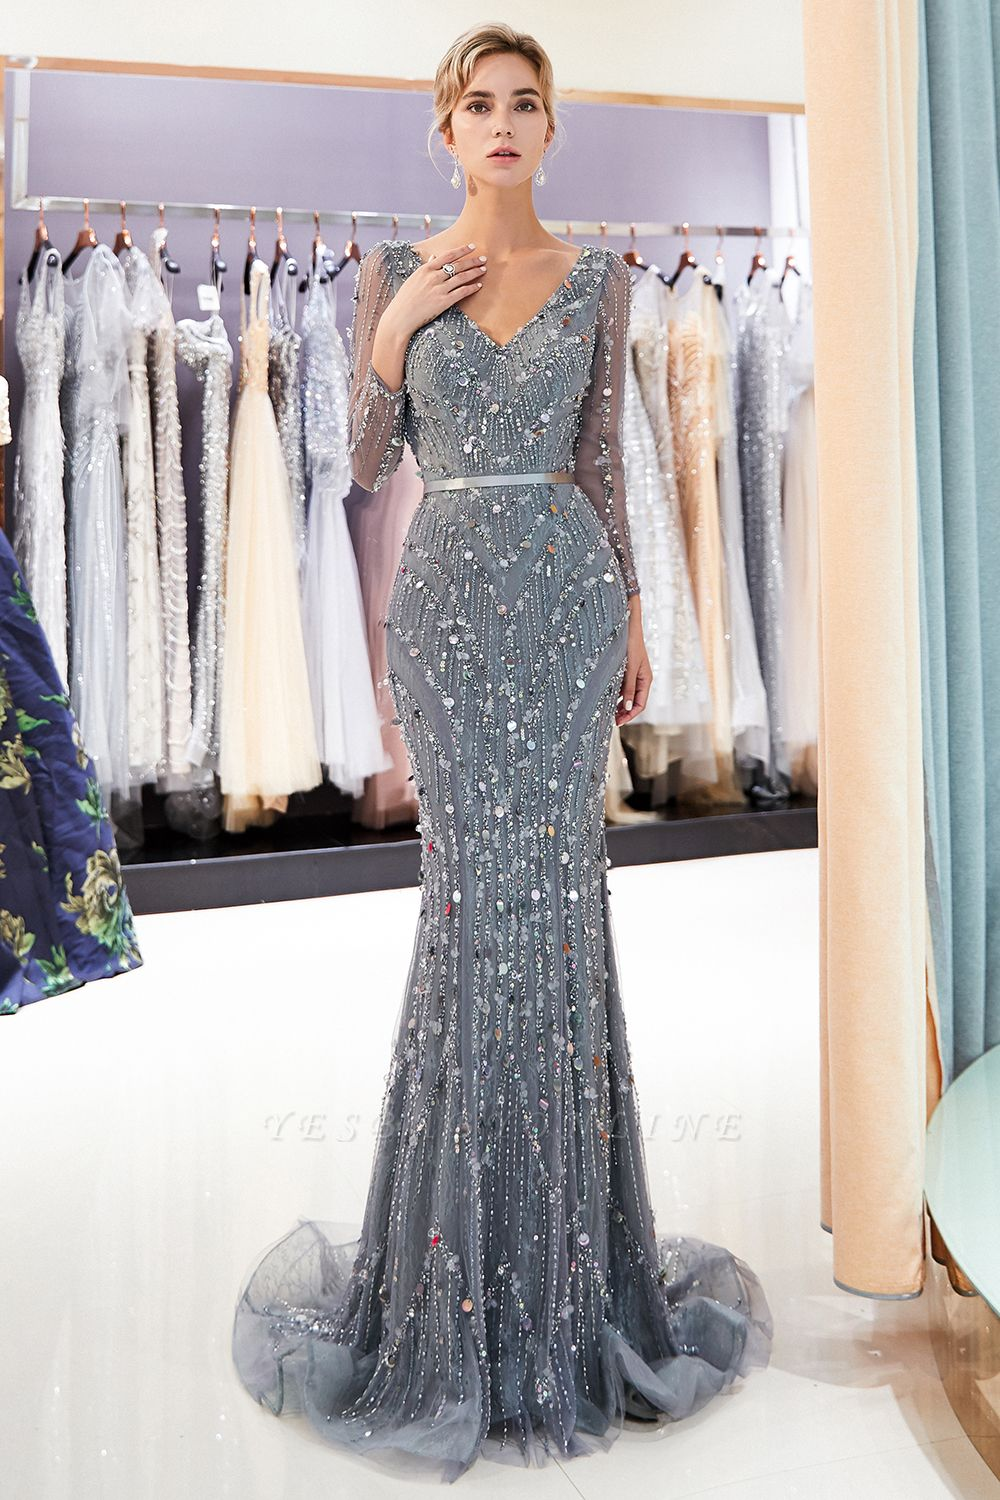 Mermaid  Sequins V-neck Long-Sleeves Prom Dress with Sash | 2019 Evening Dress